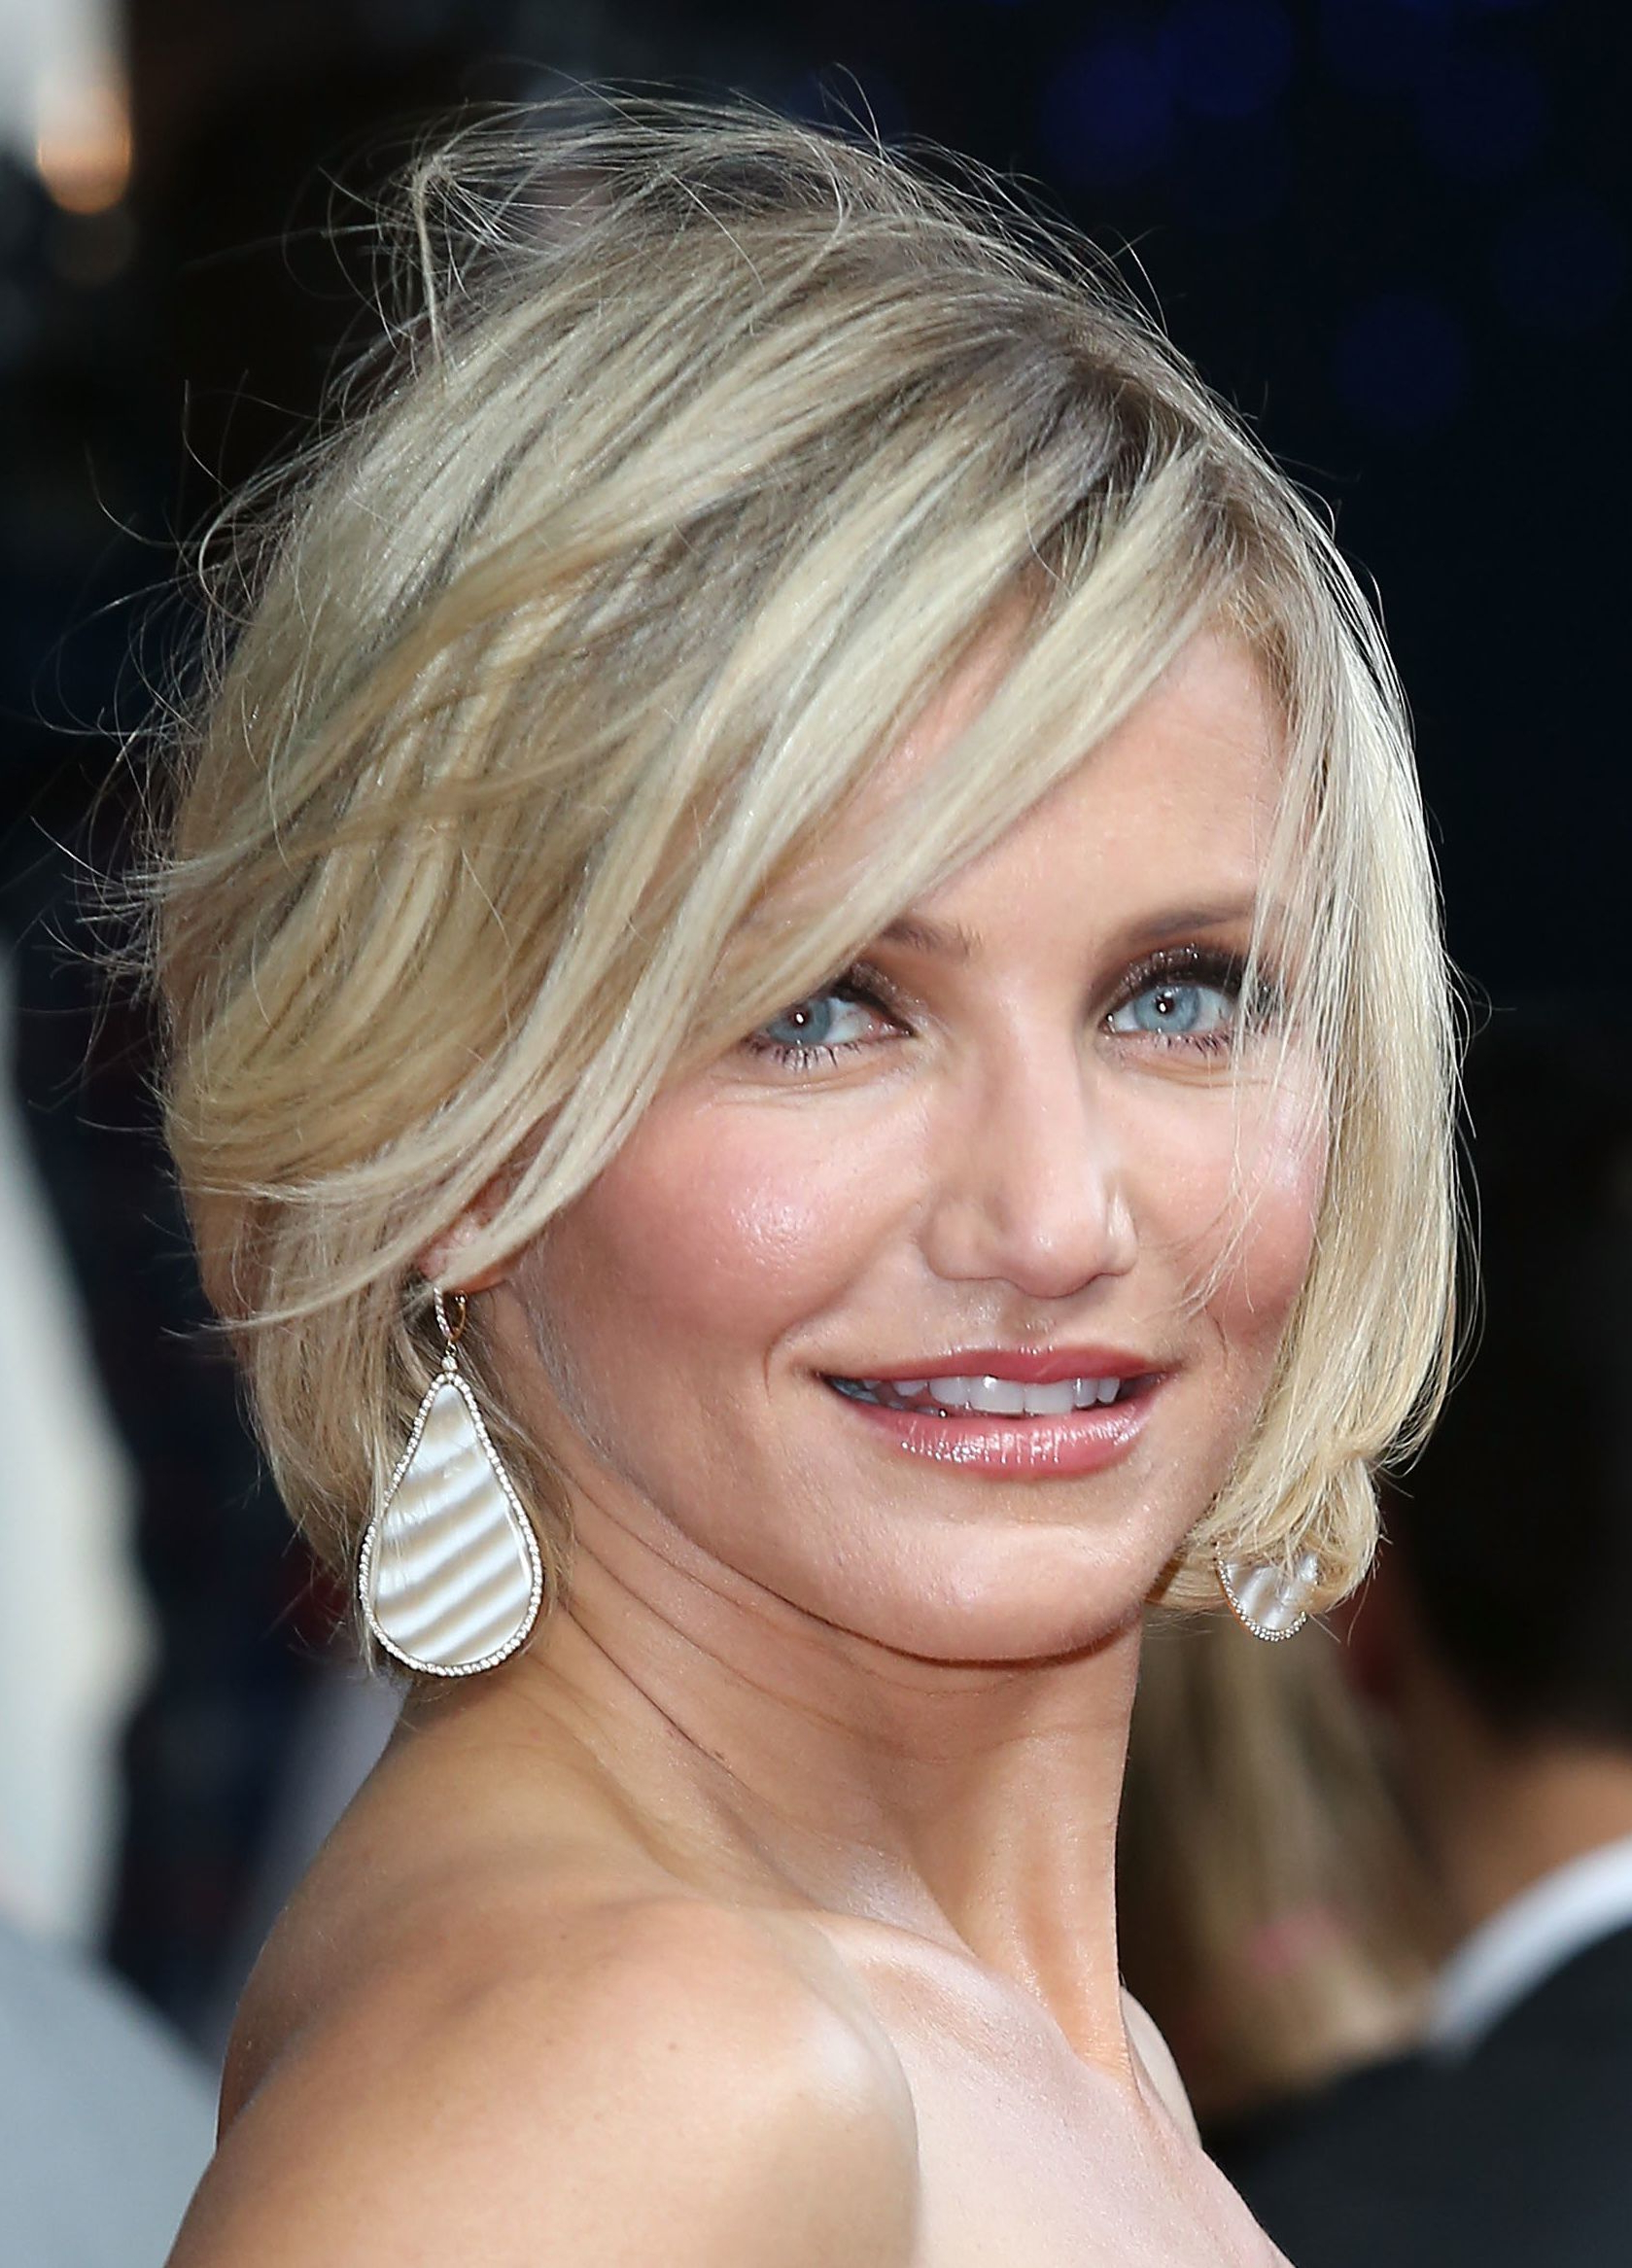 Short Blonde Hairstyles: My Favorite Picks Within Short Blonde Styles (View 19 of 25)